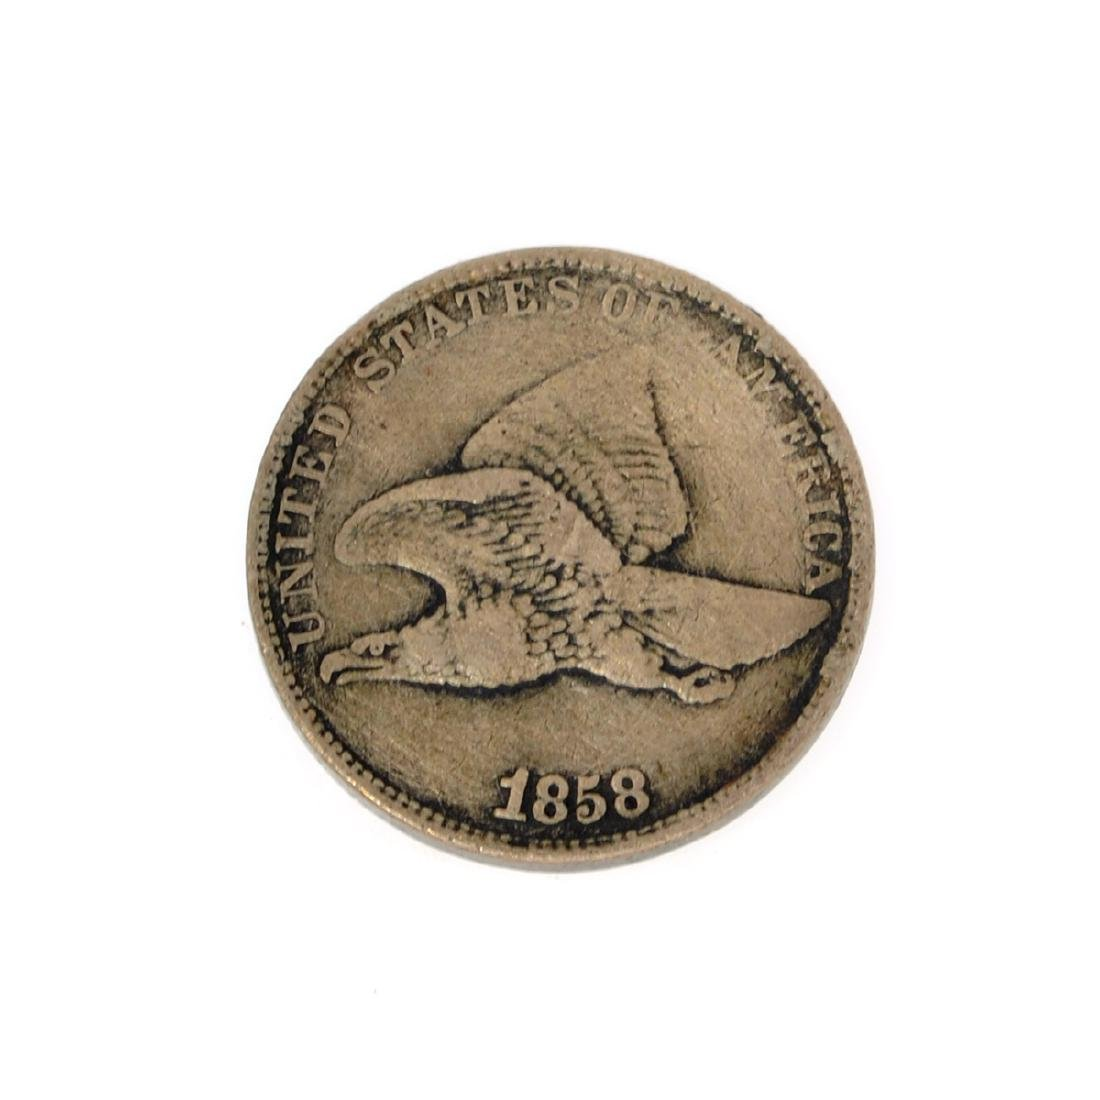 Rare 1858 Flying Eagle One Cent Coin